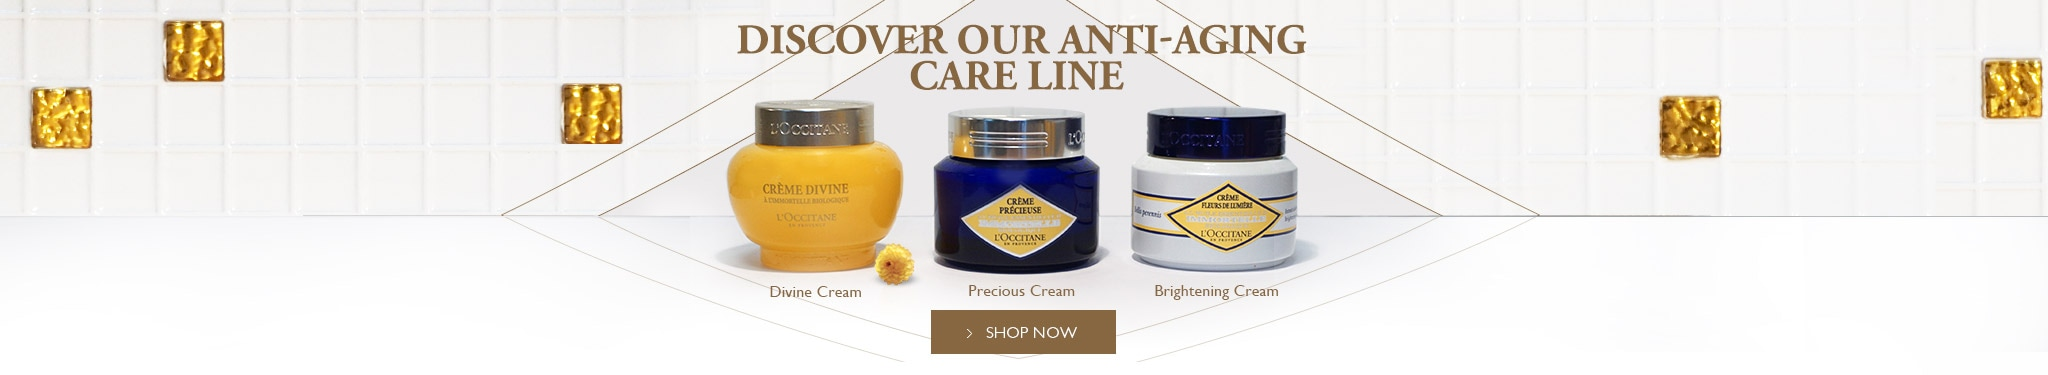 ANTI-AGEING CARE LINE